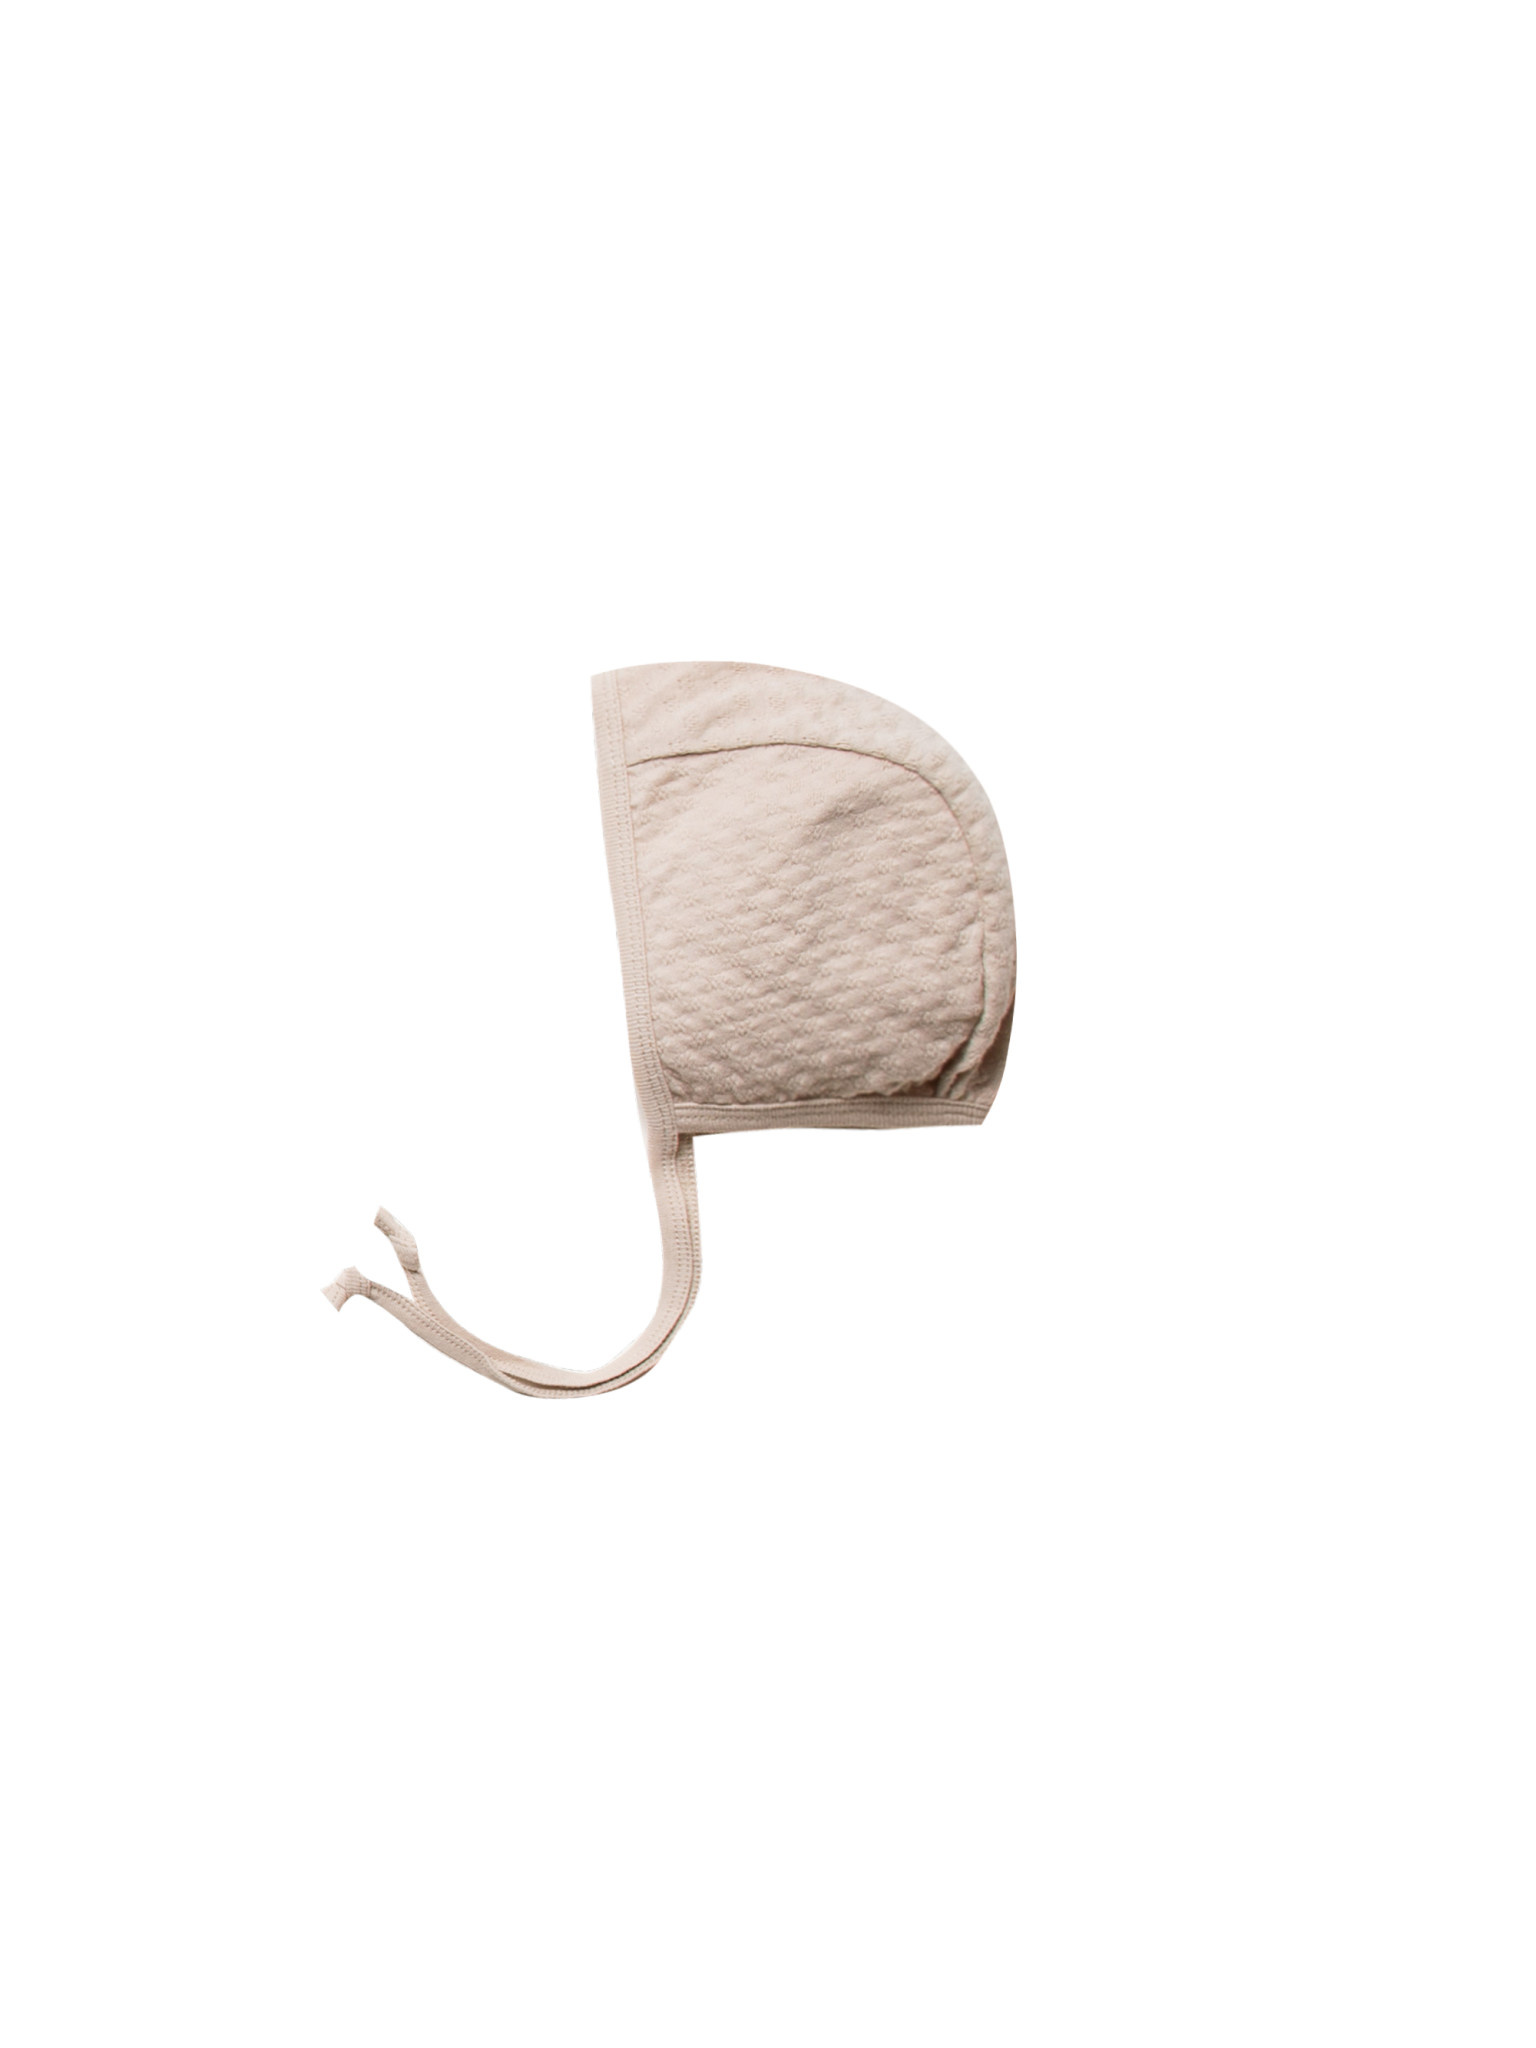 QUINCY MAE Organic Pointelle Baby Bonnet